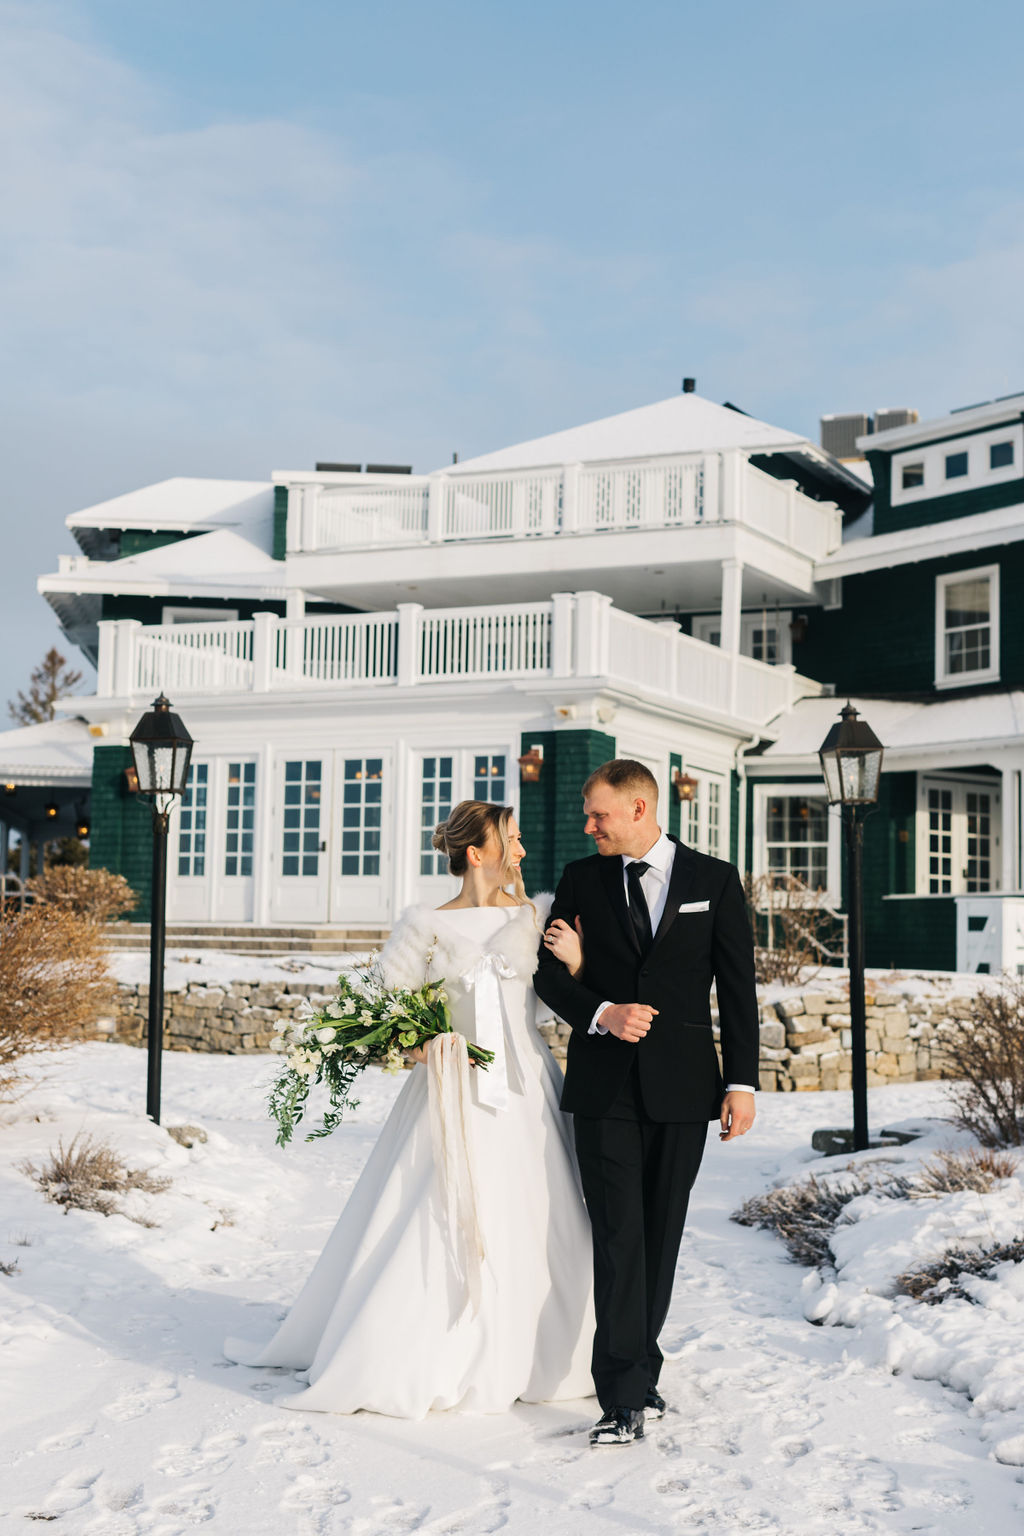 French's Point Winter Wedding